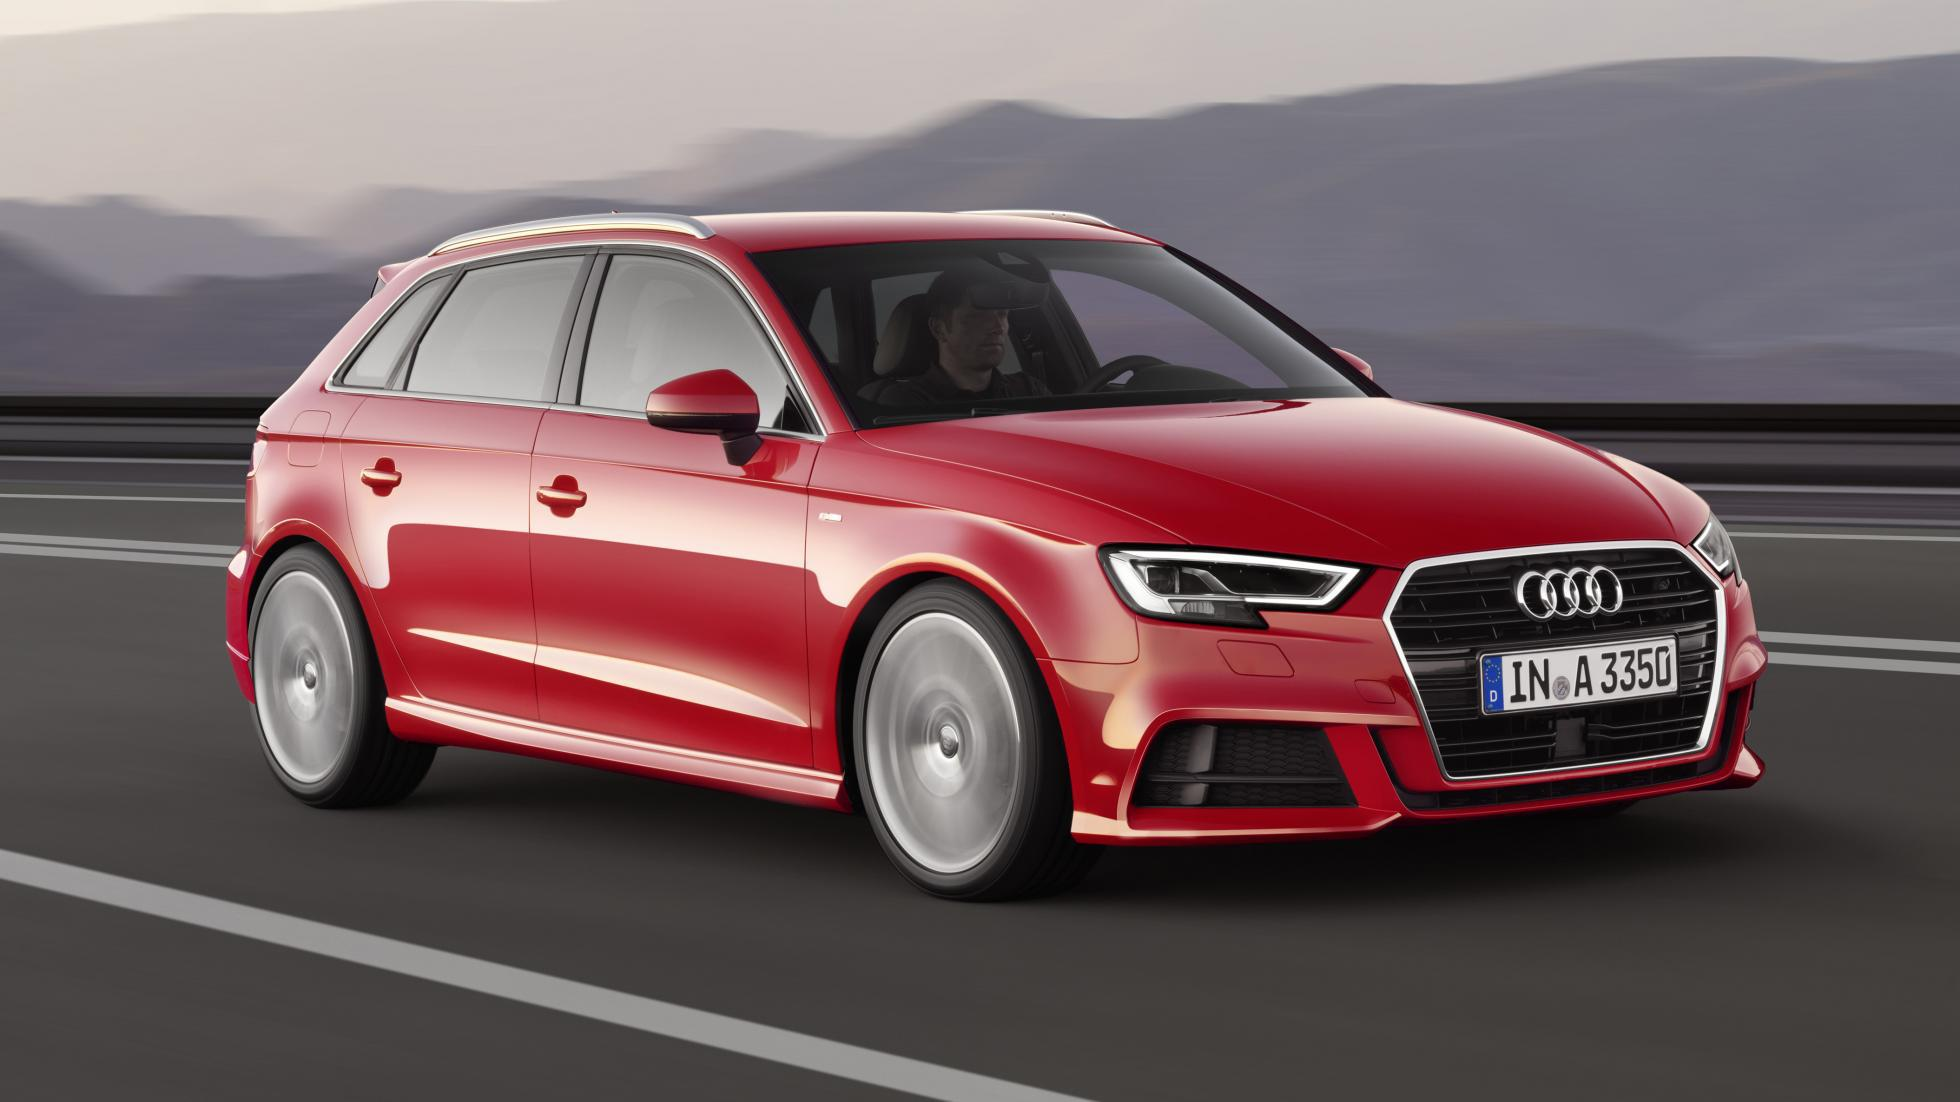 Audi A3 G Tron Rijtest Cng Wagens